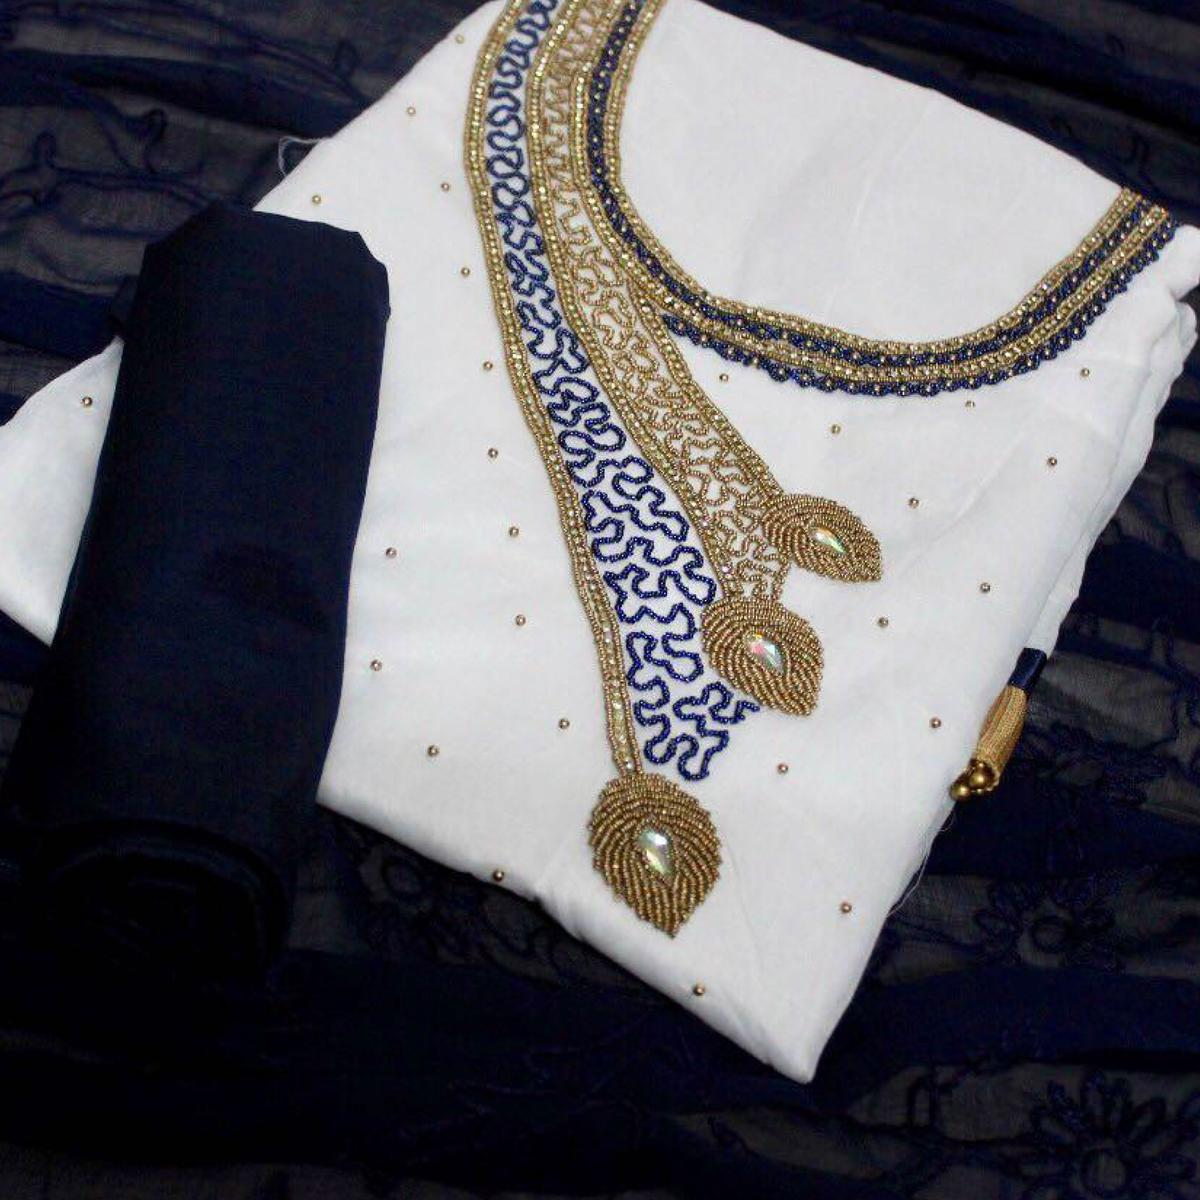 Dazzling White-Navy Blue Colored Designer Chanderi Cotton Dress Material